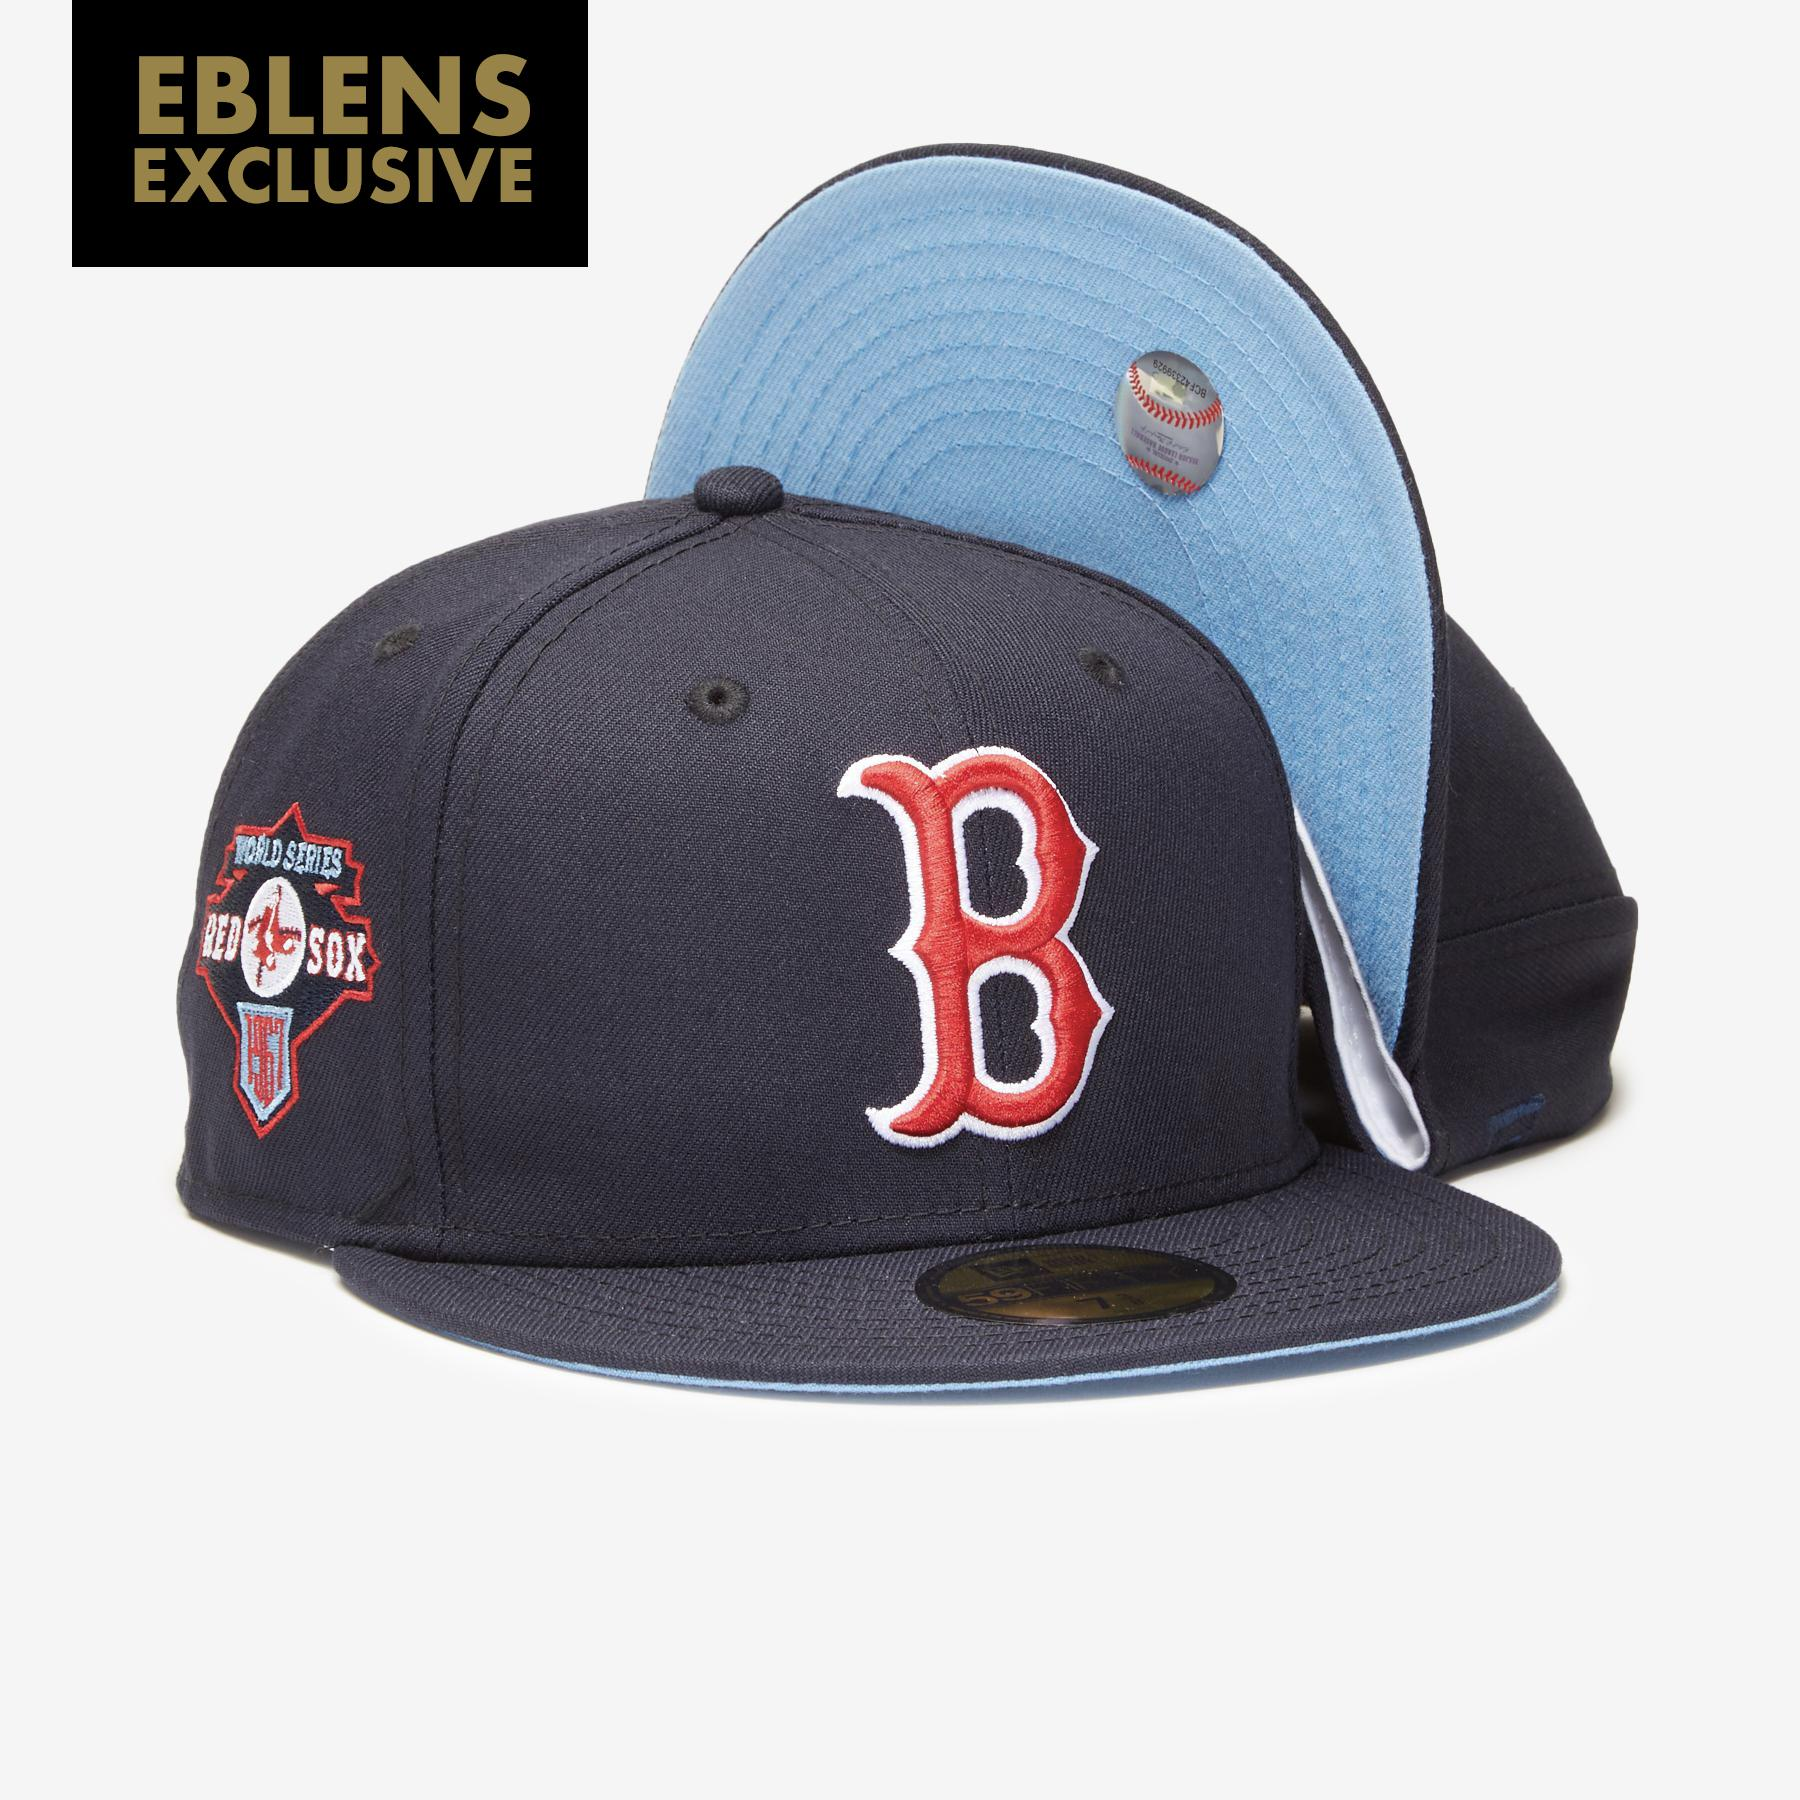 Boston Red Sox 59fifty 1967 World Series Fitted Hat